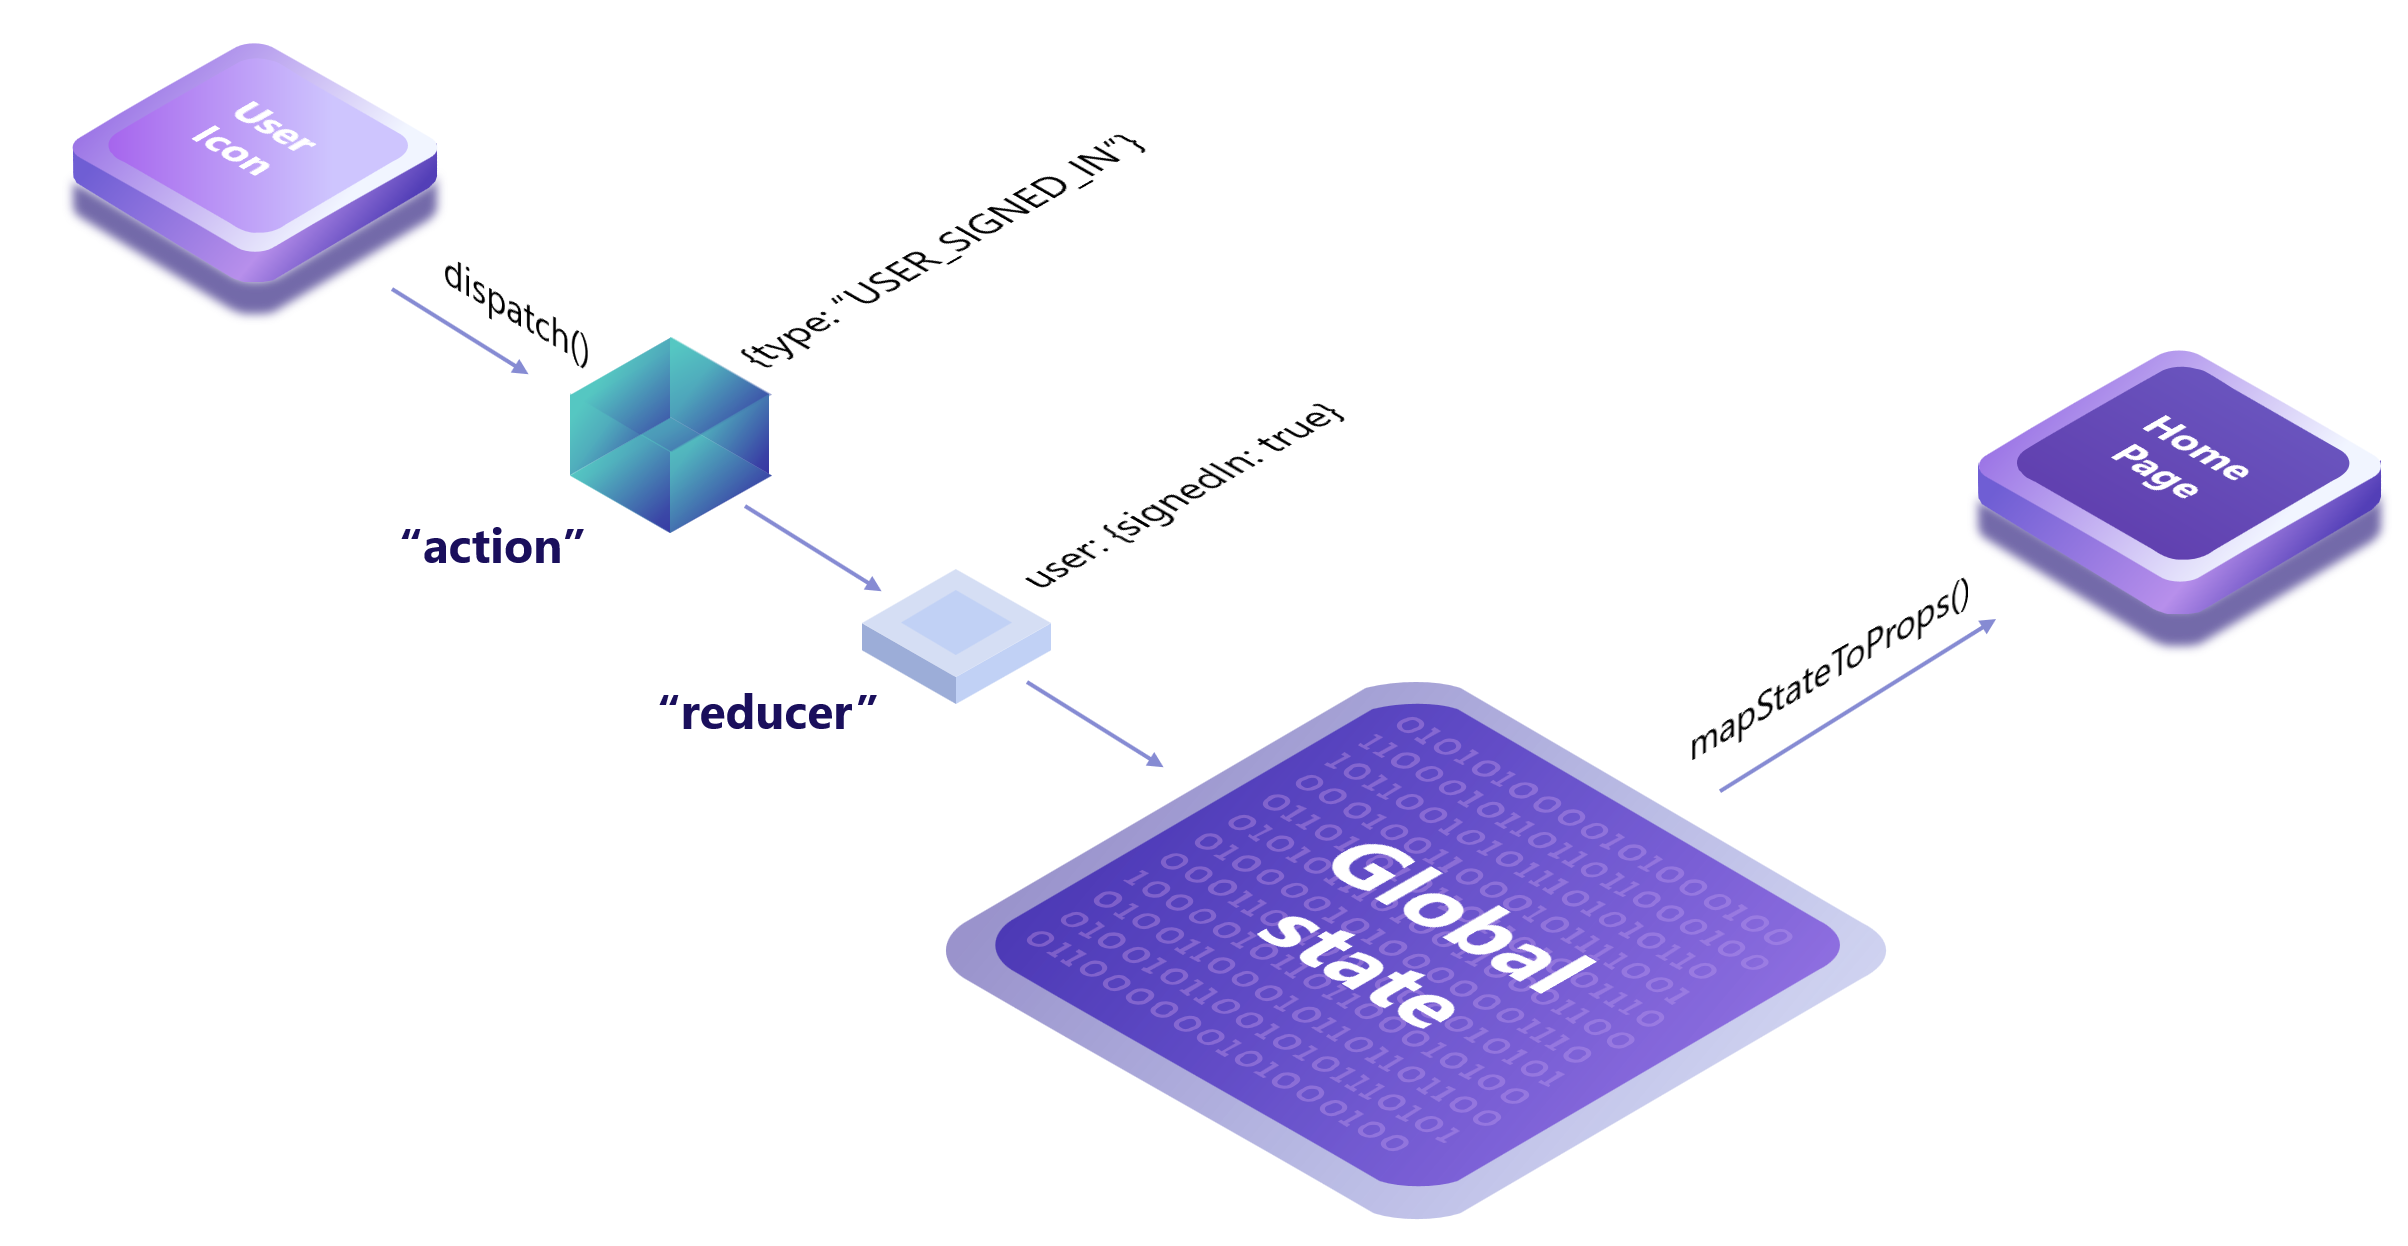 Redux global state update and propagation